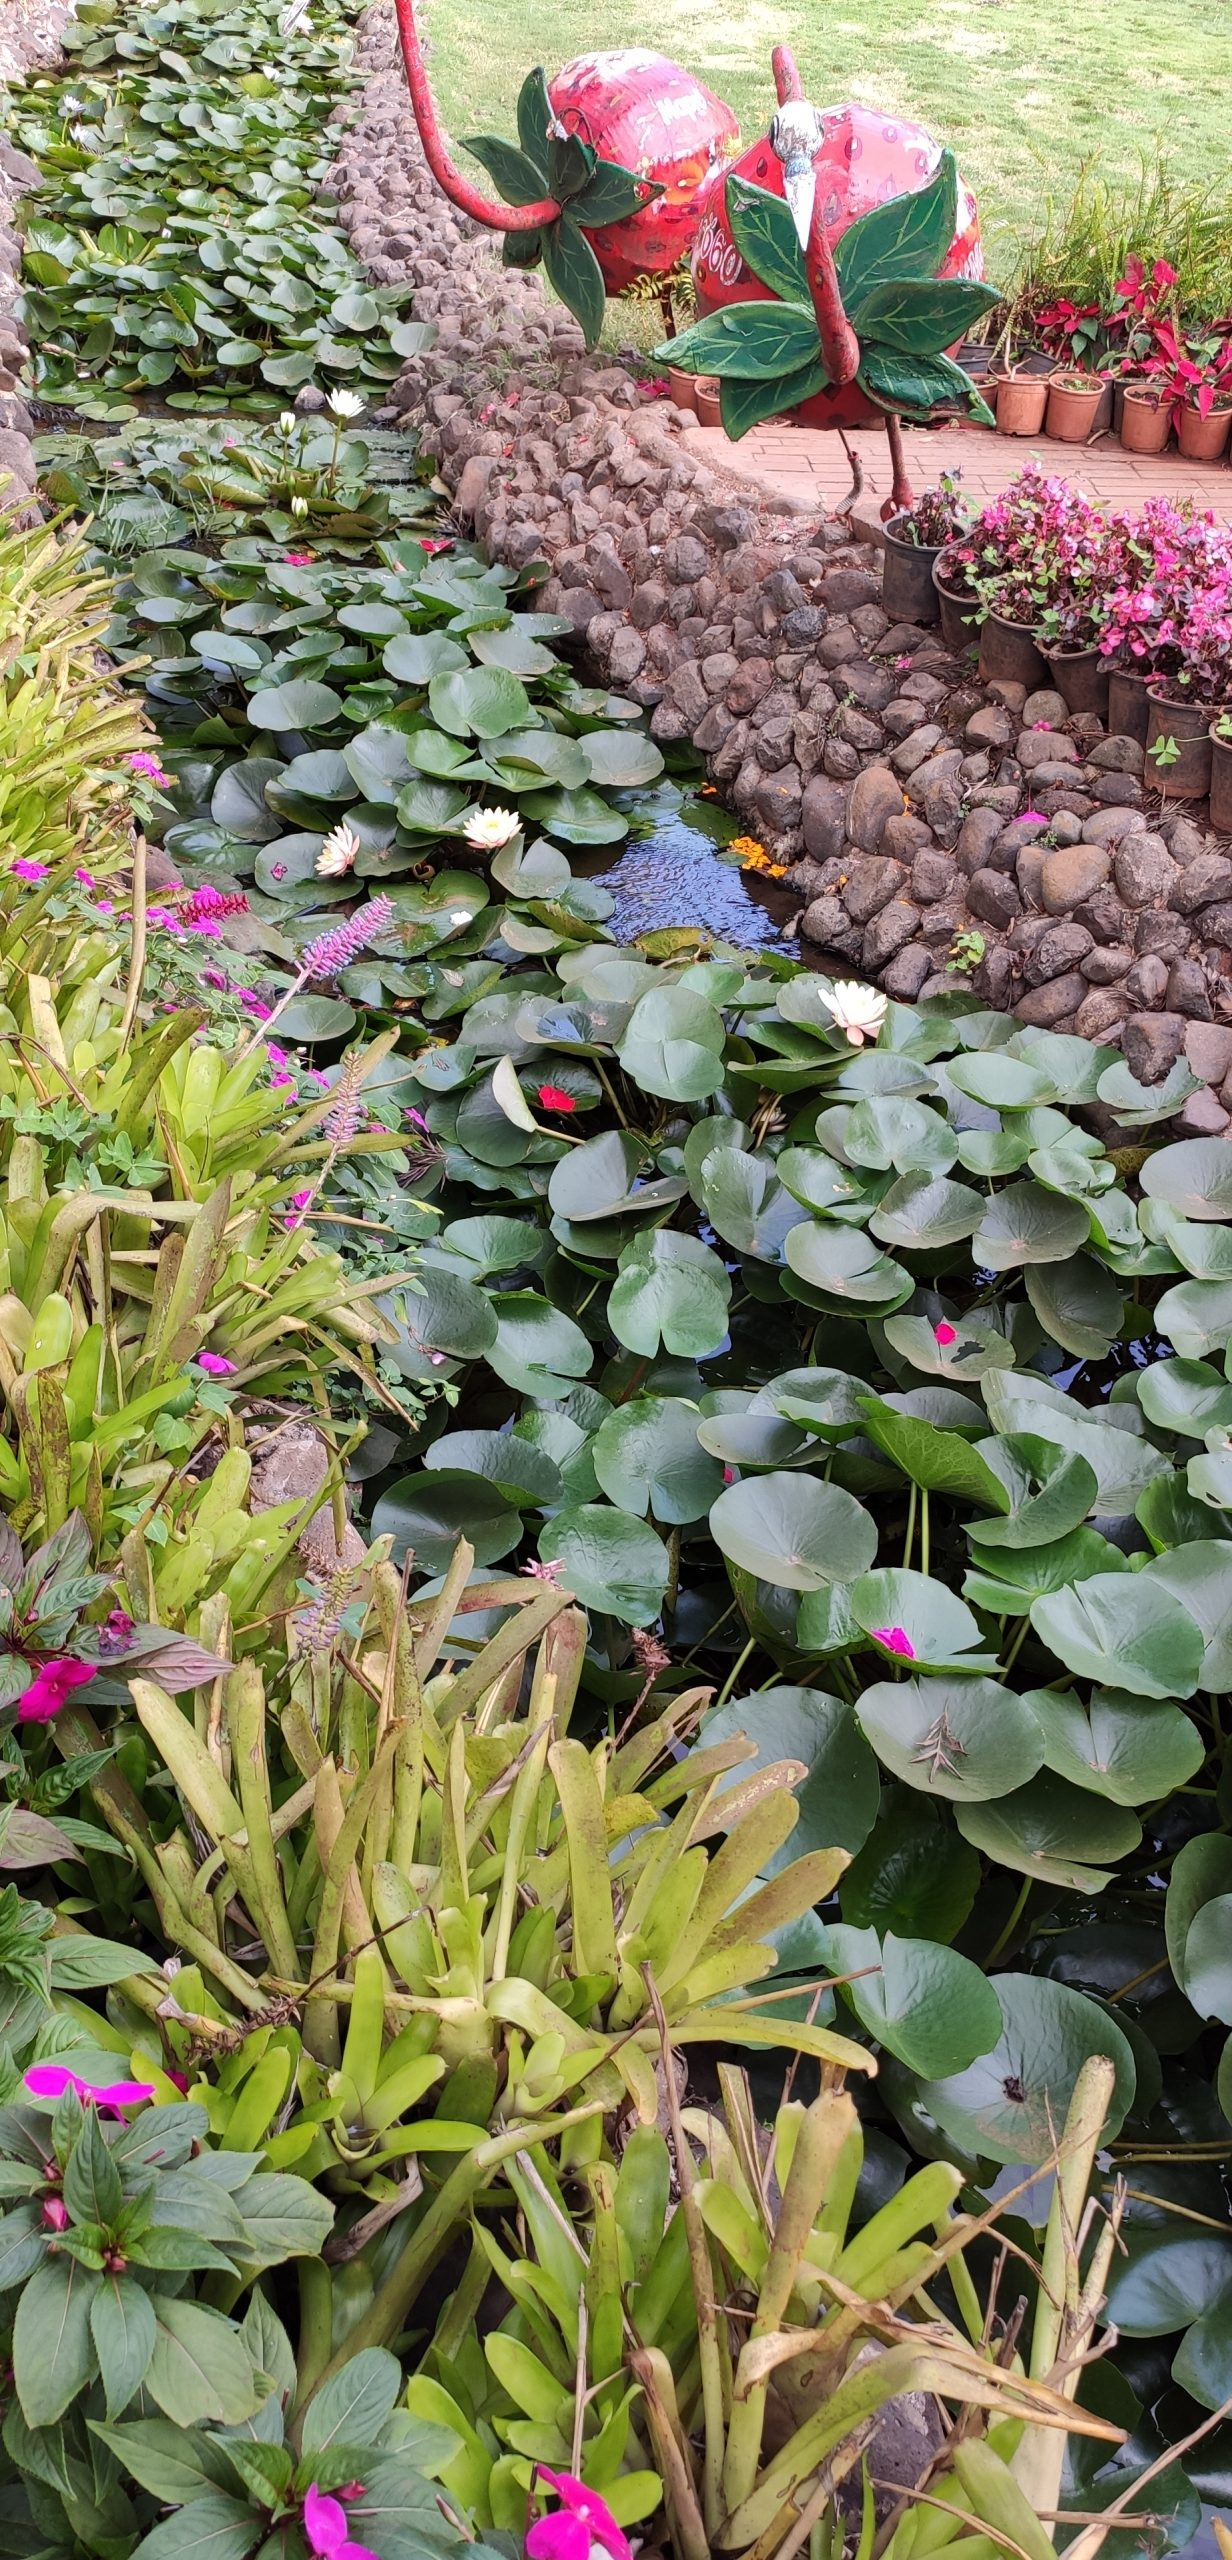 different types of plants in a garden